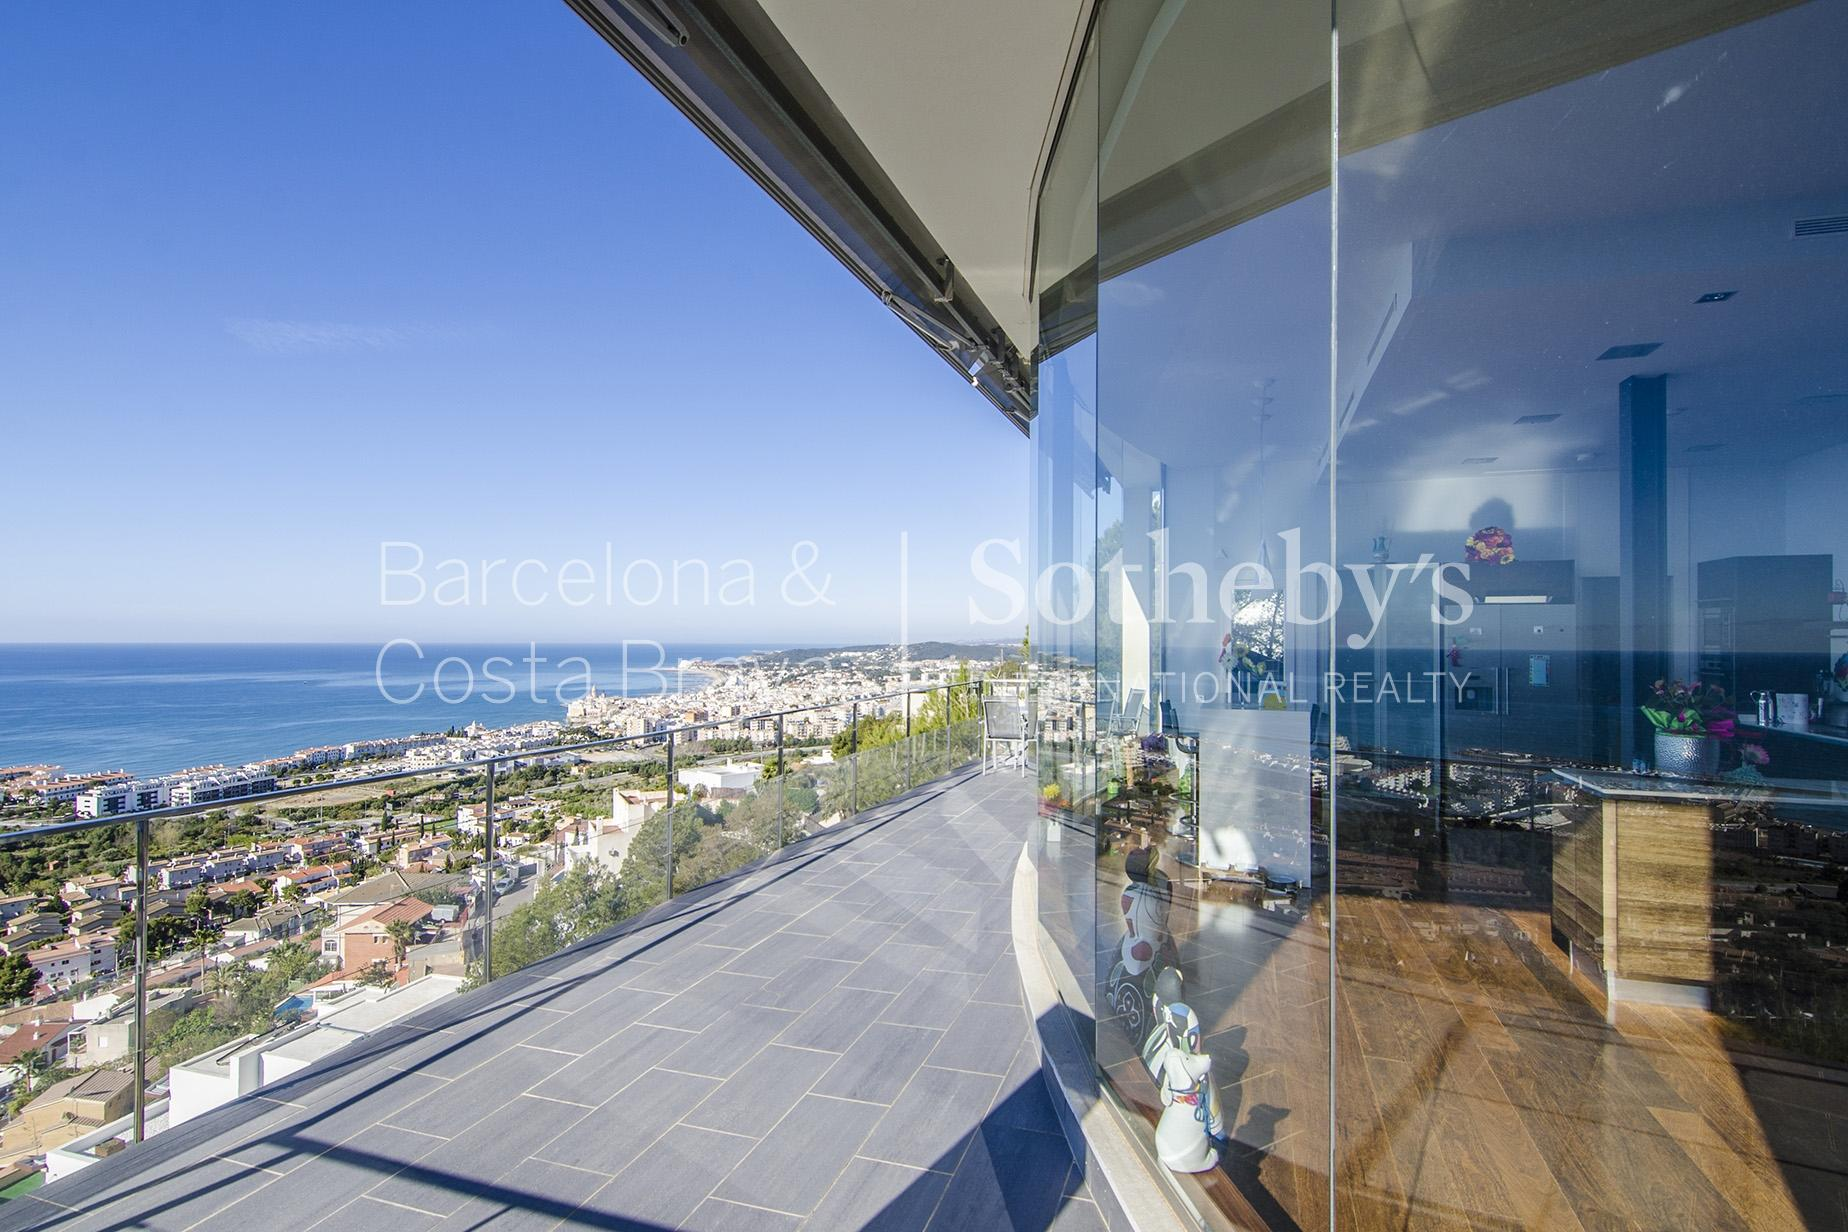 Single Family Home for Sale at Fantastically Designed House with Stunning Views to Sitges Sitges, Barcelona 08870 Spain